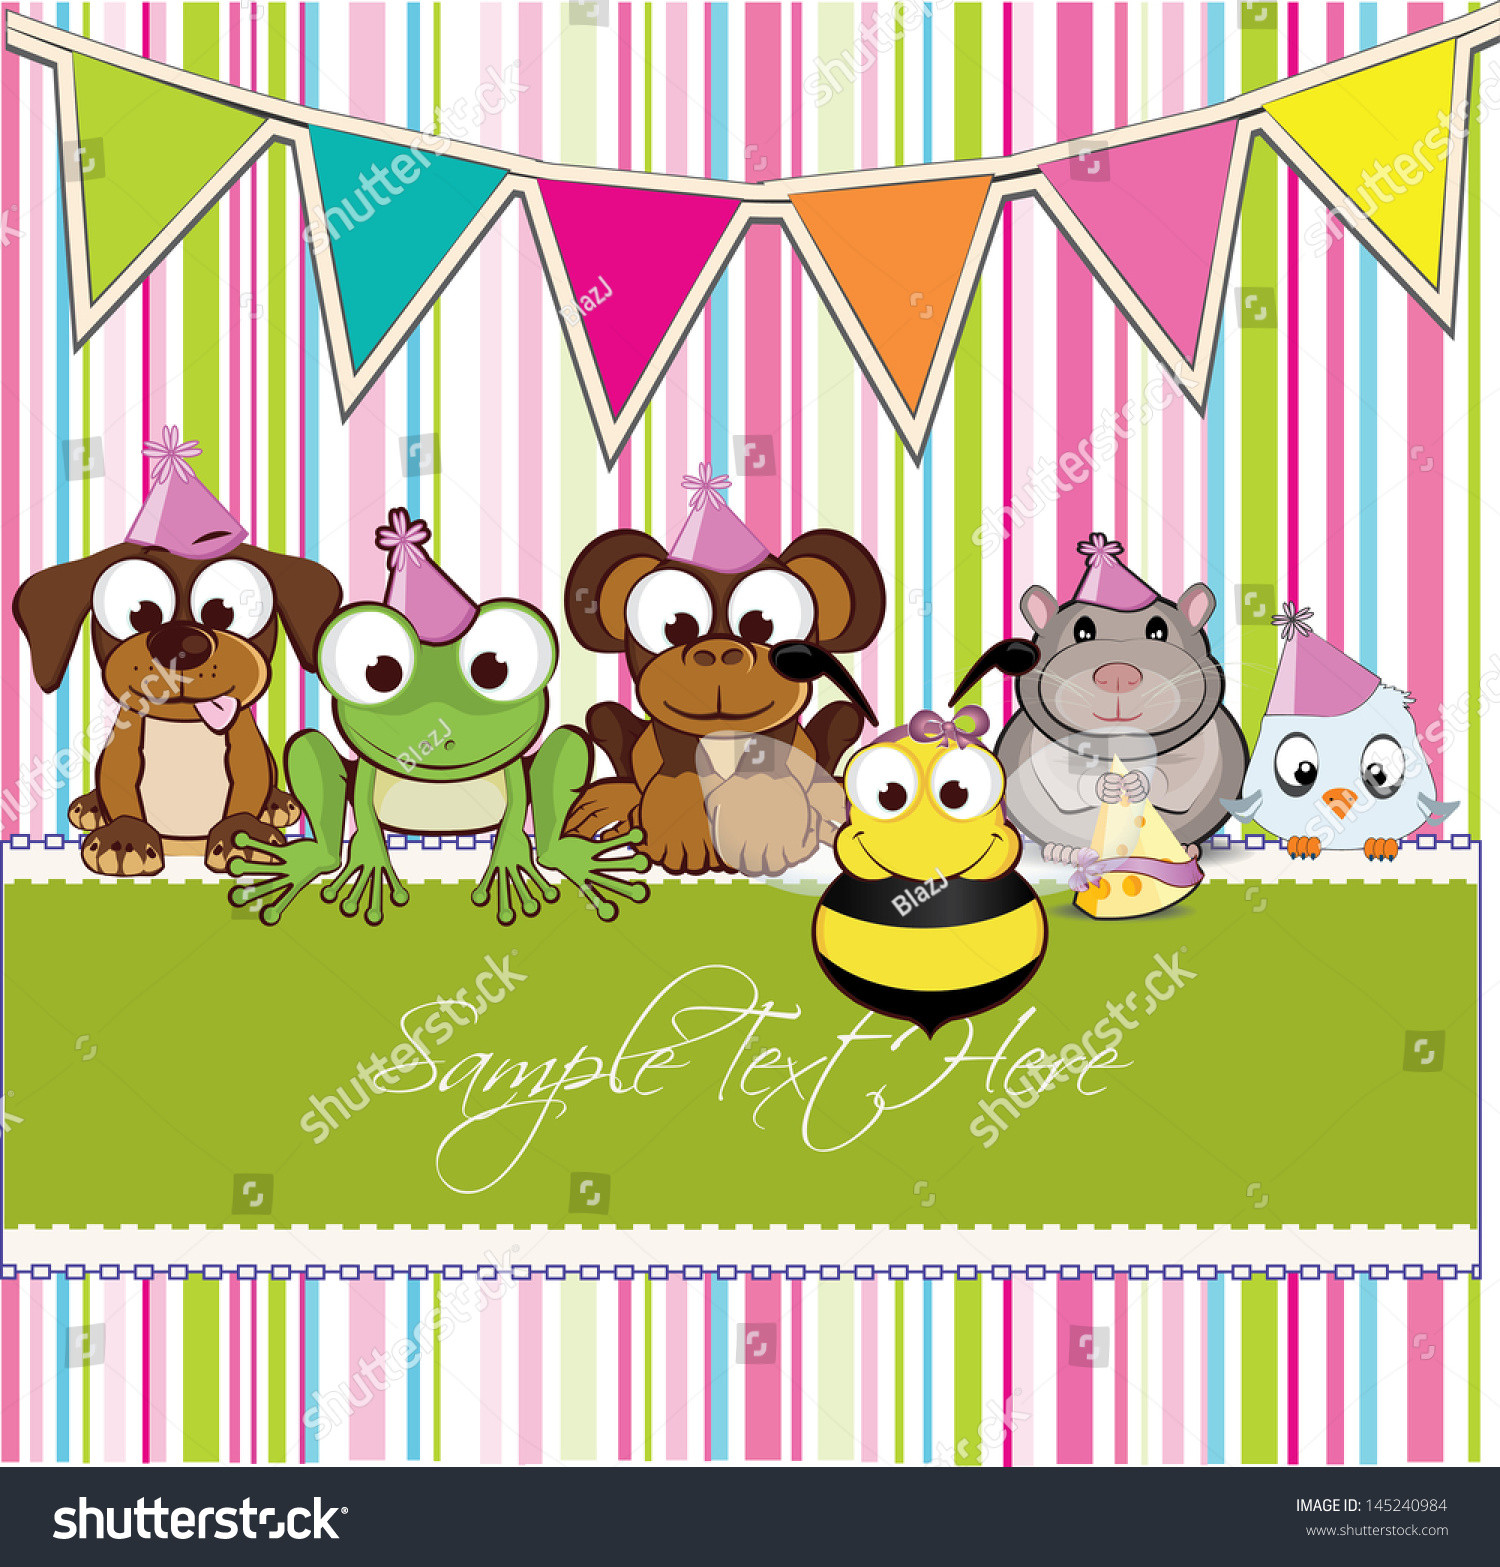 Baby Welcome Party Invitation  Invitation Card Wel e Baby Birthday Party Stock